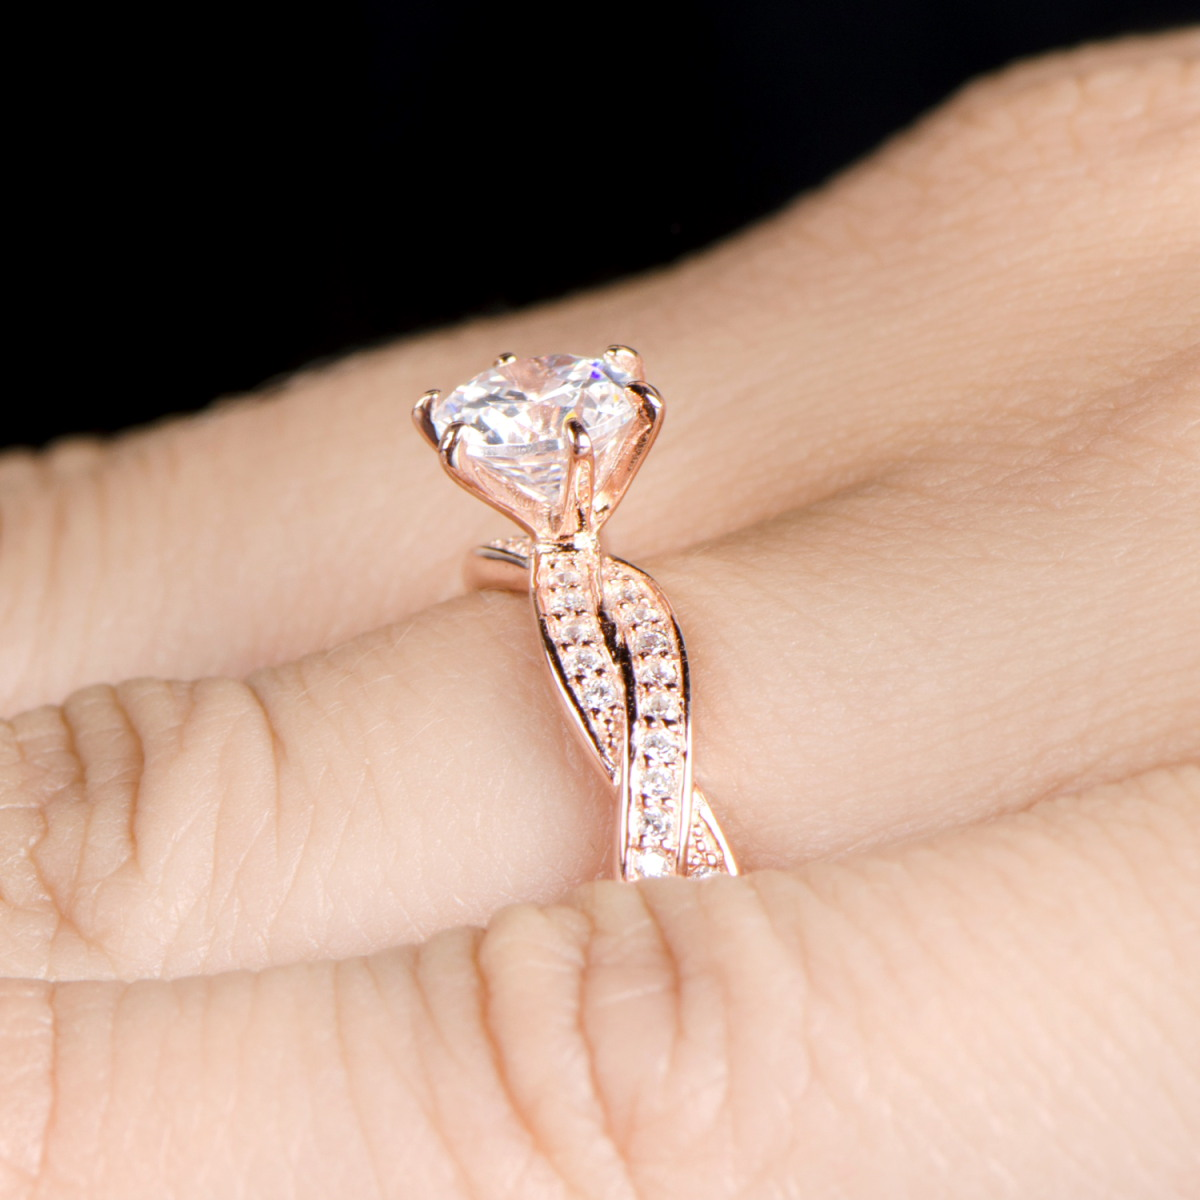 large rose gold engagement ring - Rose Gold Wedding Rings For Women